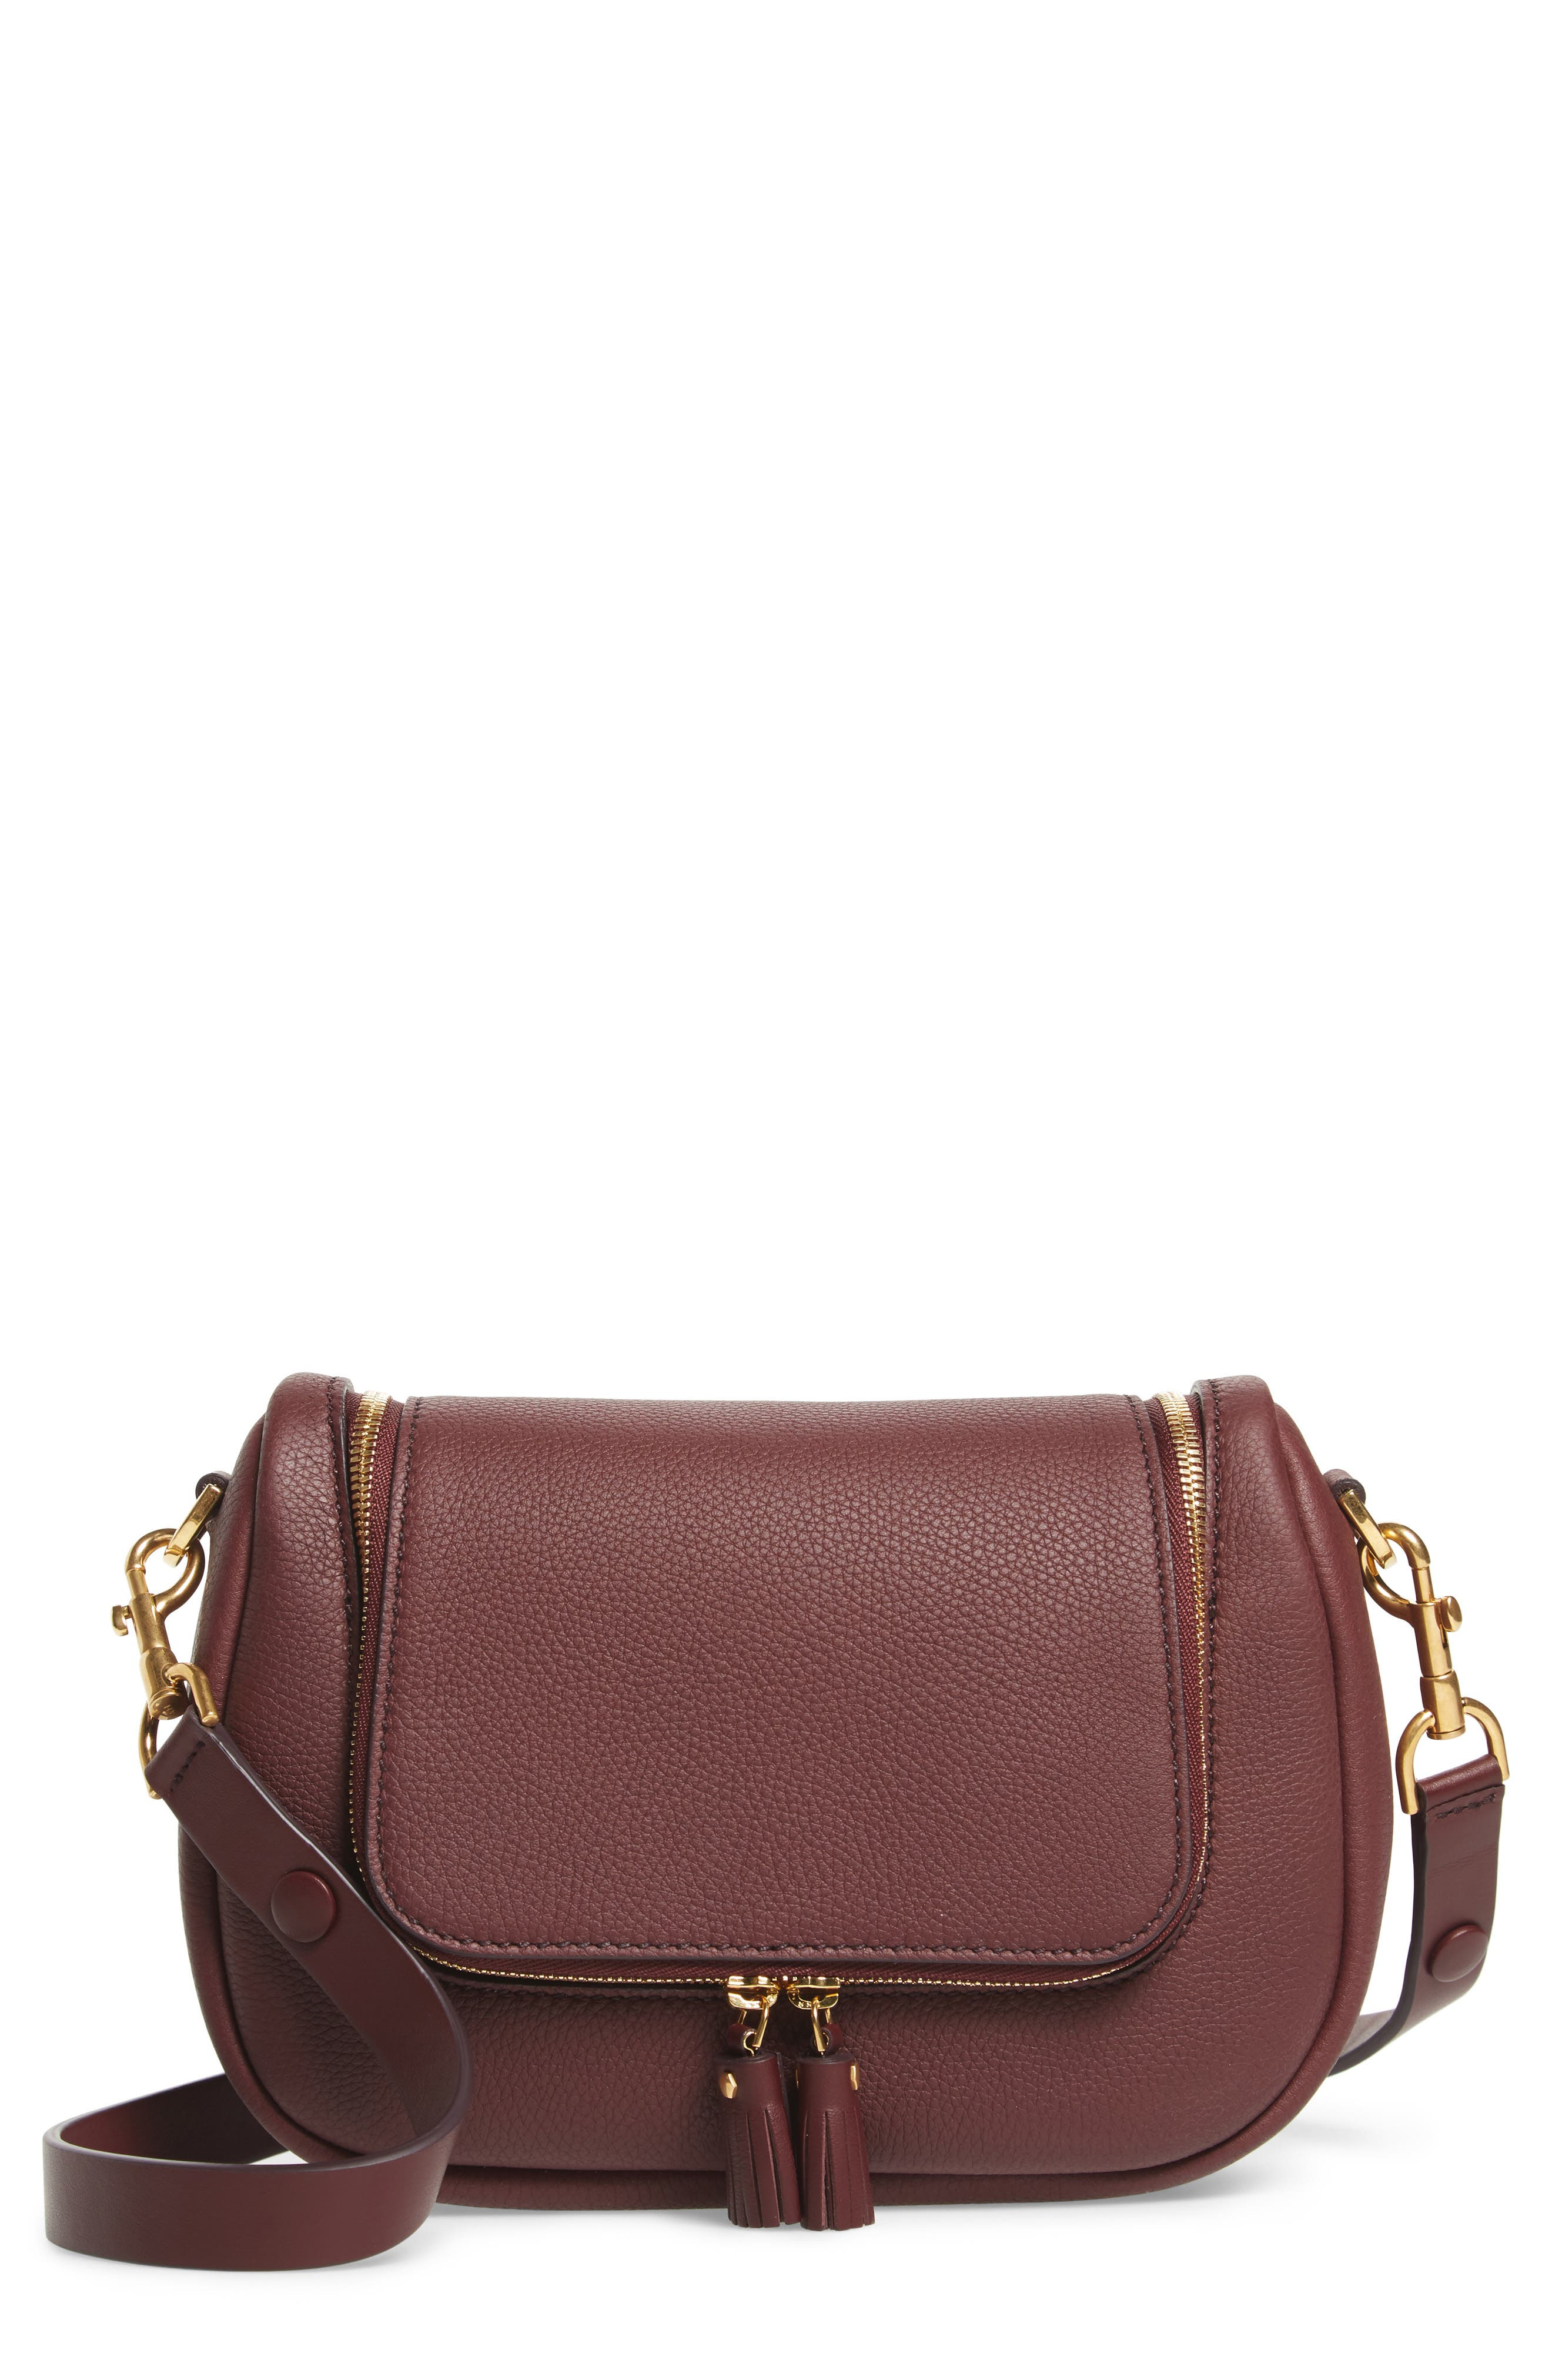 Small Vere Leather Crossbody Satchel,                             Main thumbnail 1, color,                             CLARET